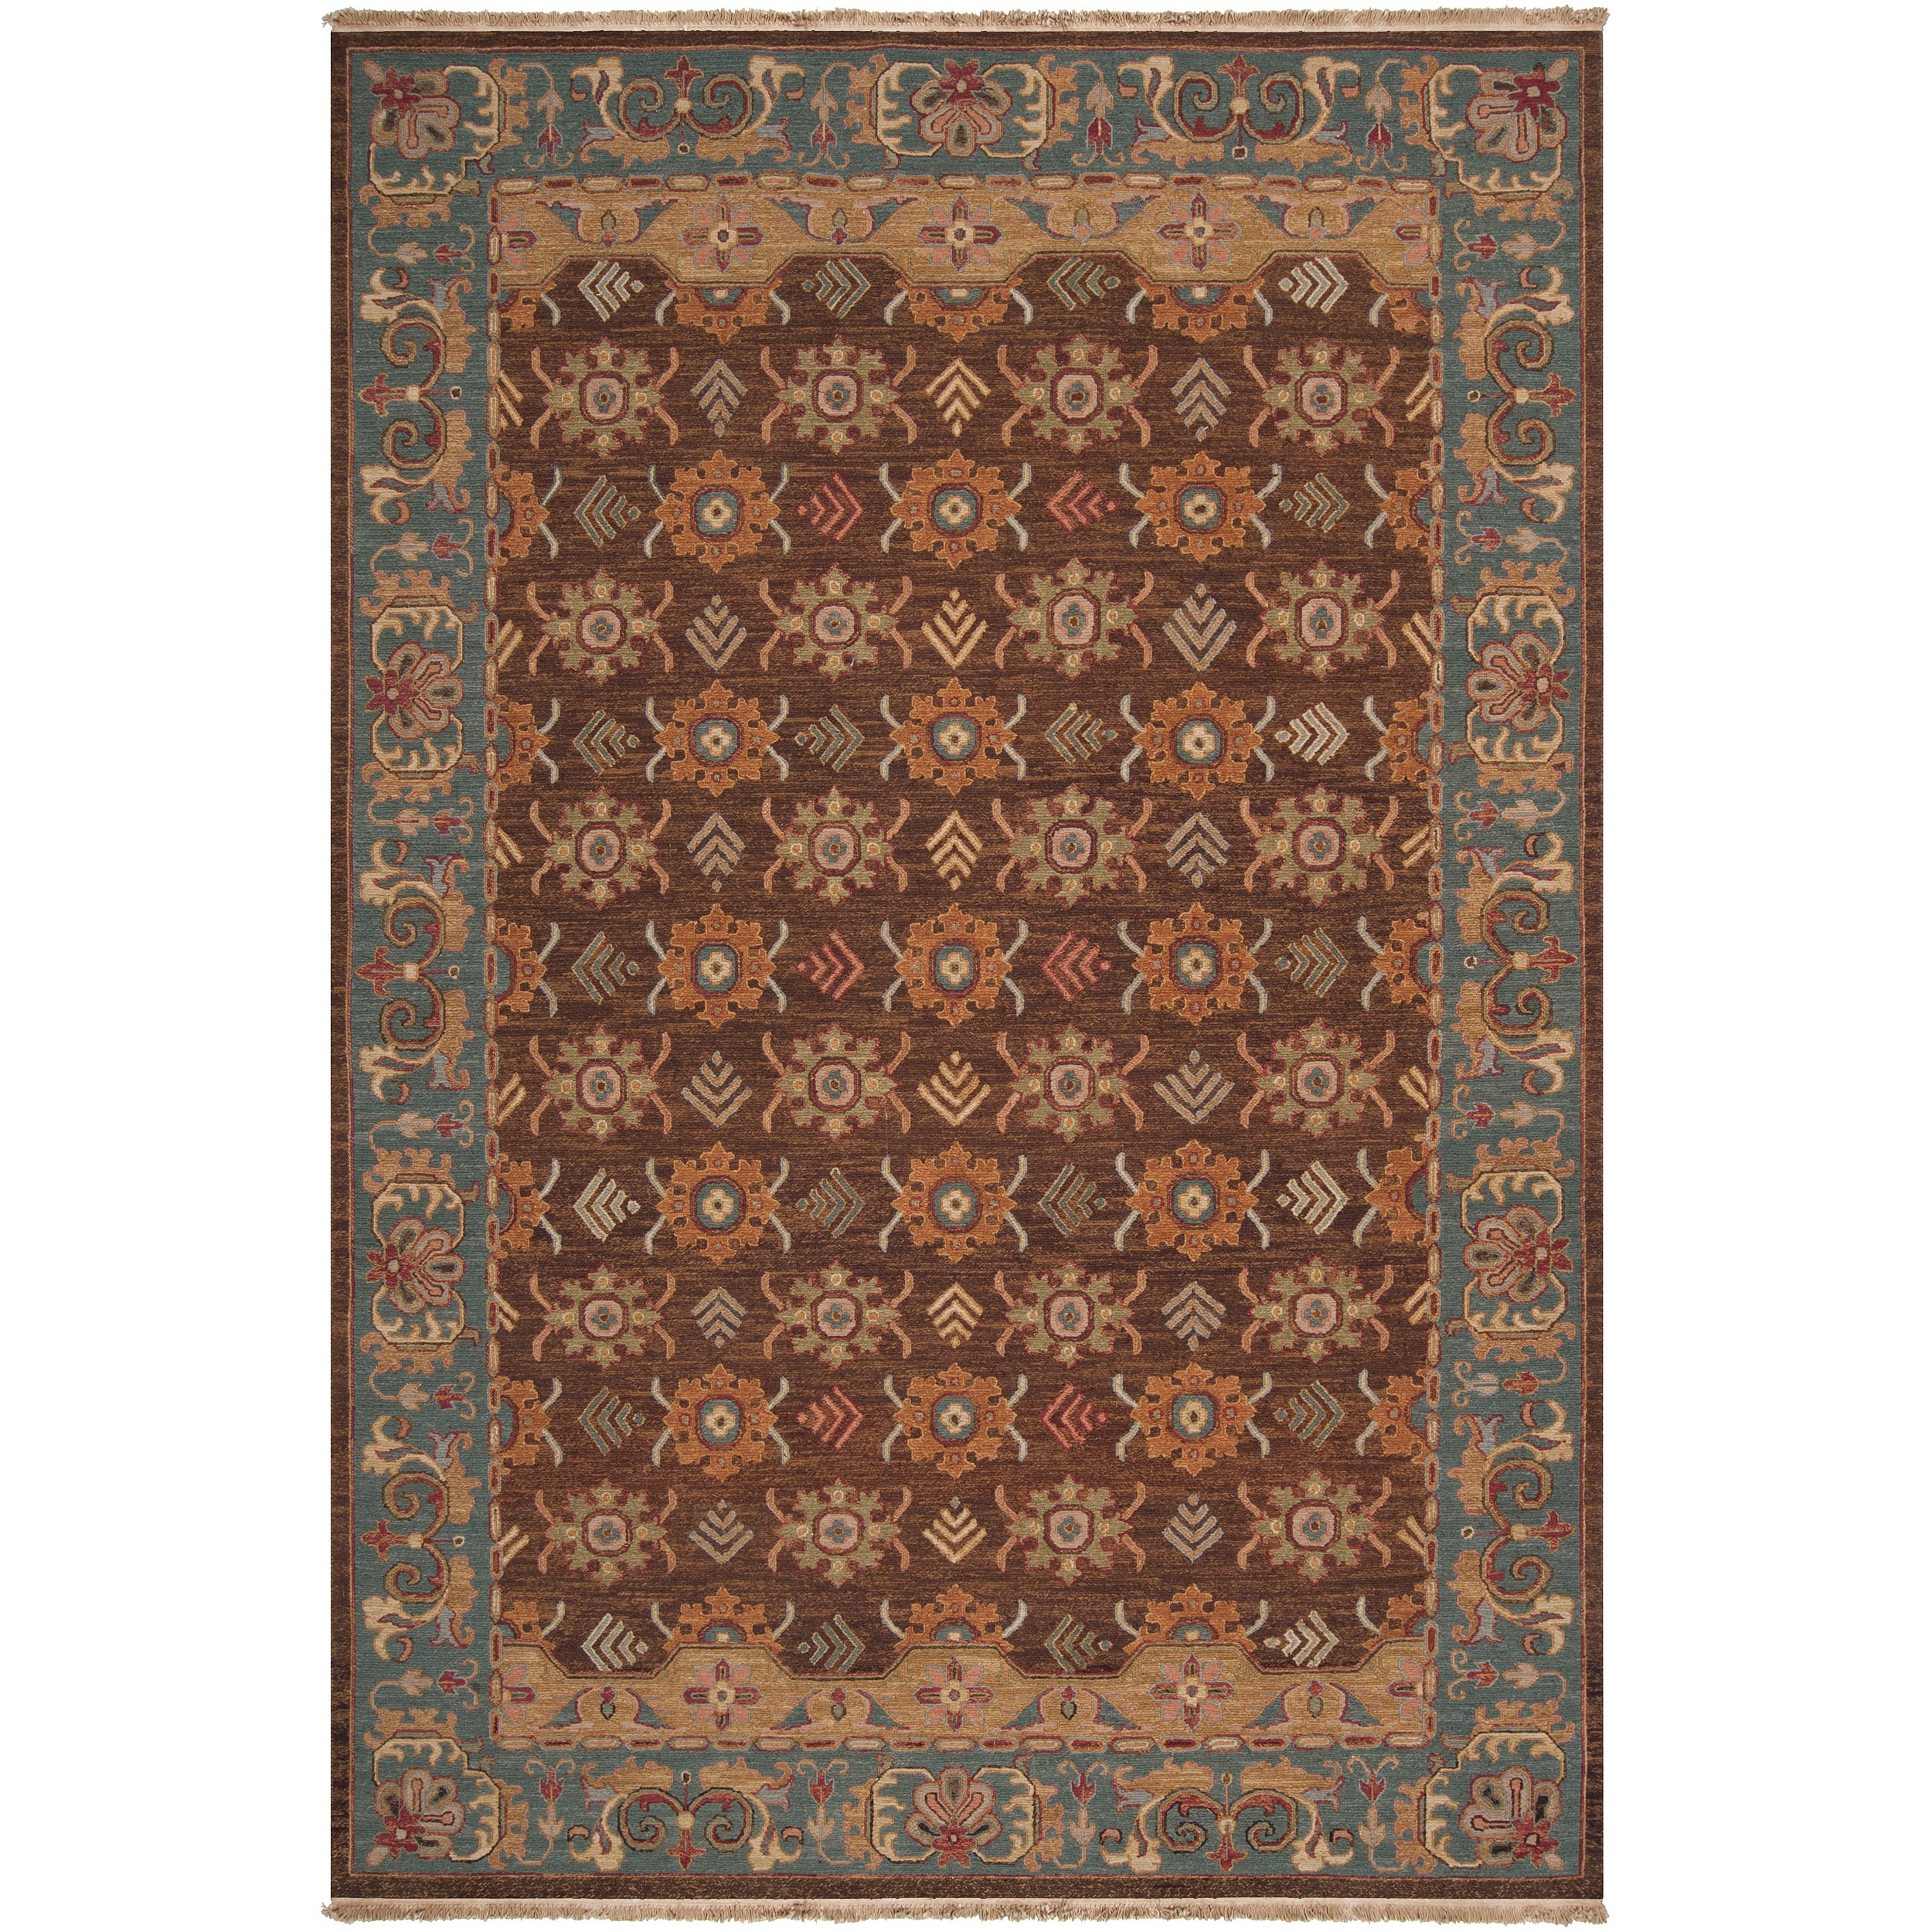 ... Rugs 6 X 9 By Hand Knotted Brown Smokehouse E New Zealand Wool Rug 6 X  ...